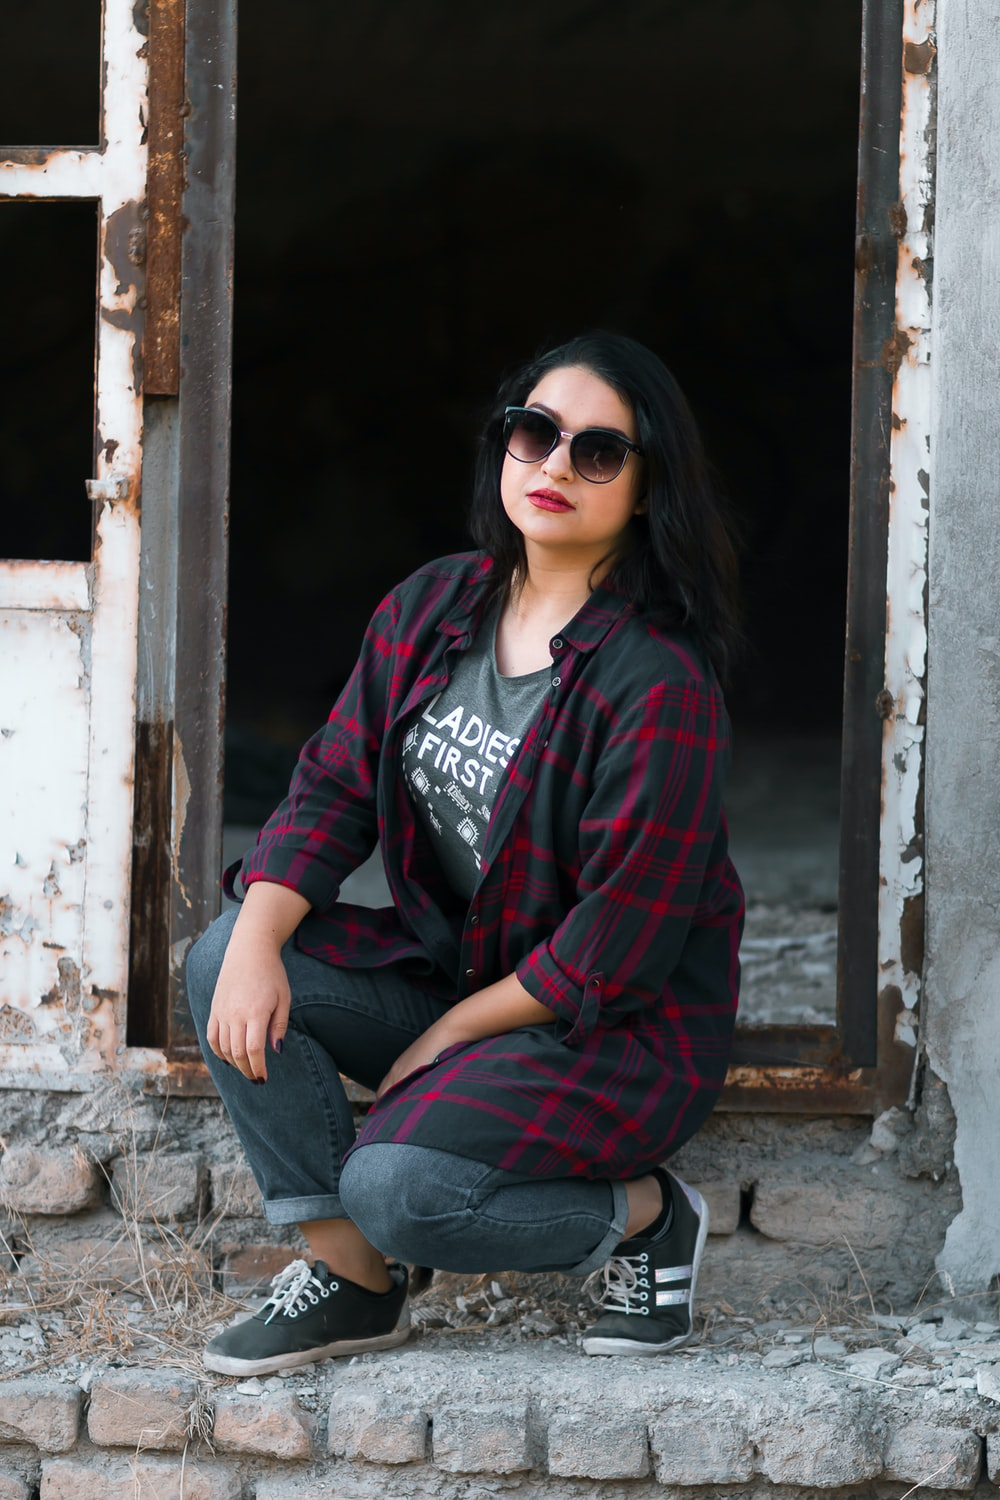 woman in red and black jacket and blue denim jeans wearing black sunglasses sitting on concrete